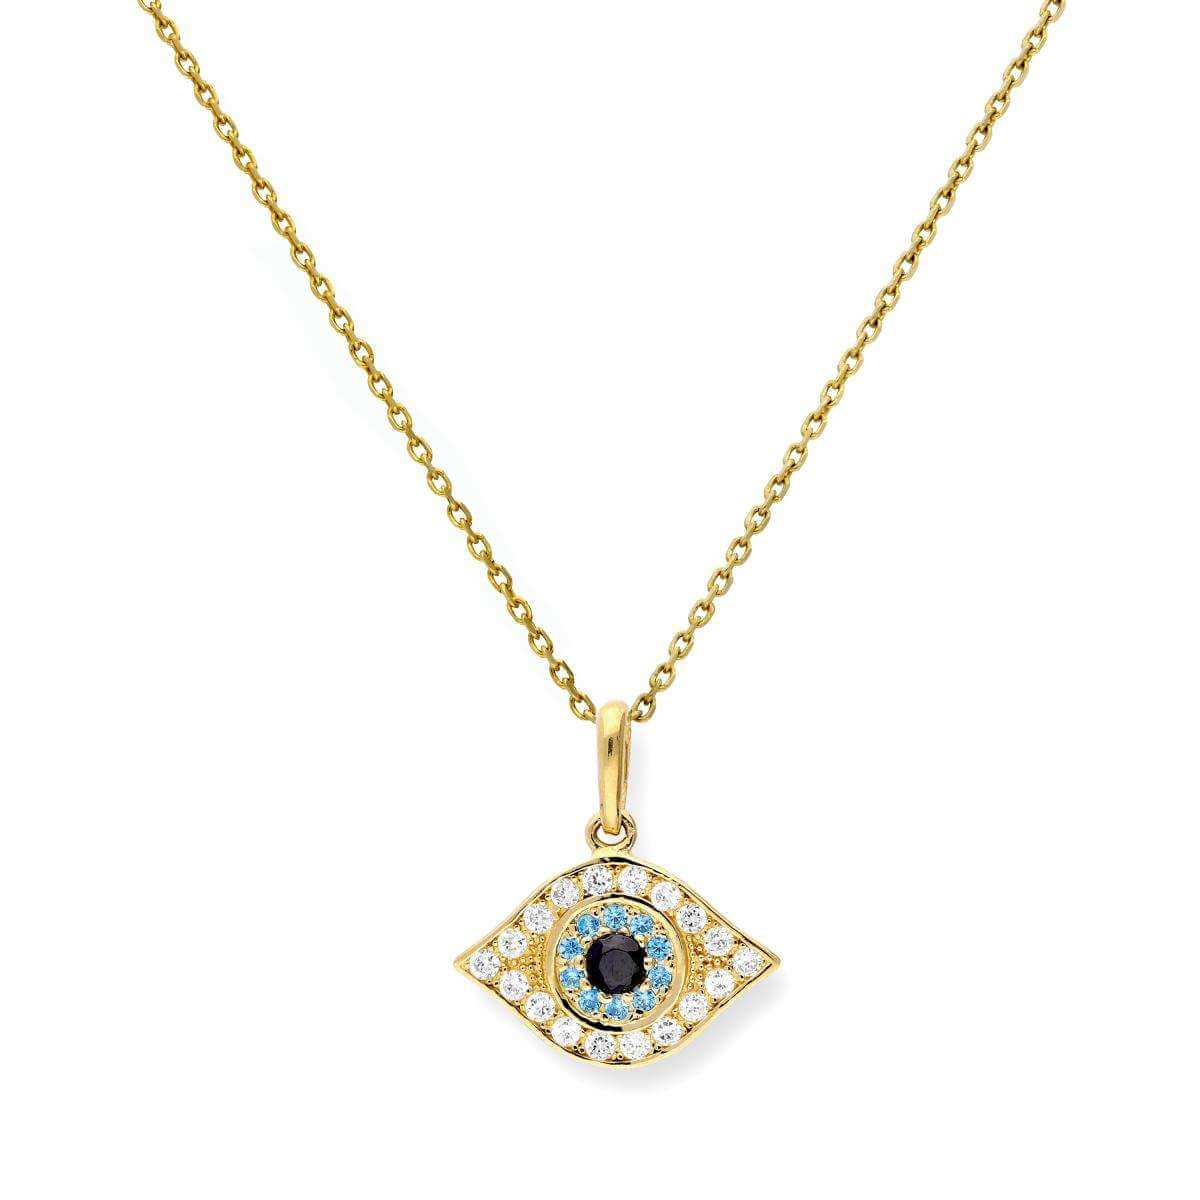 9ct Gold & CZ Crystal Evil Eye Pendant Necklace